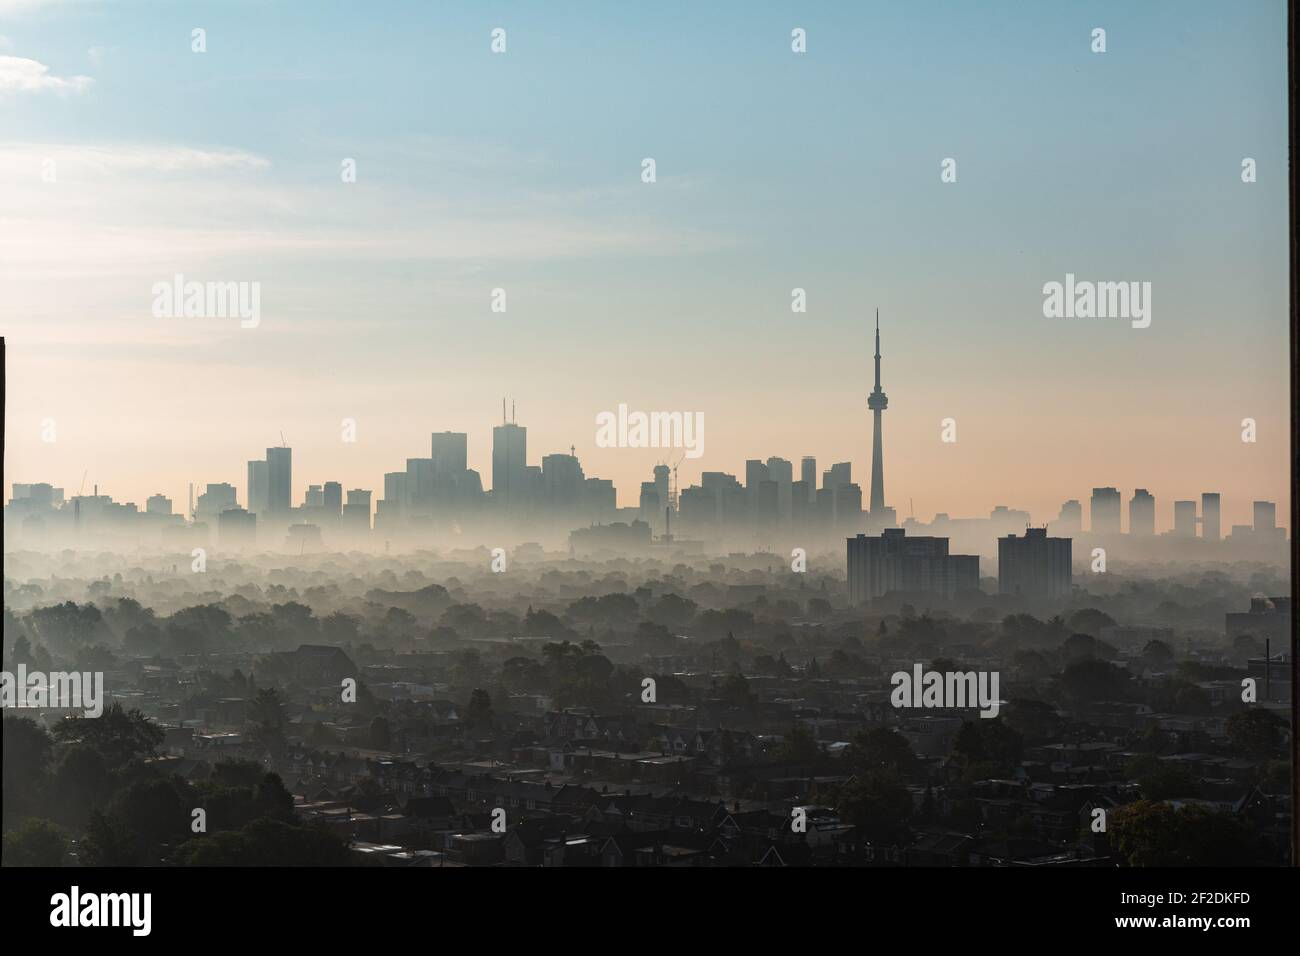 Skyline of Toronto with its CN Tower, seen from a skyscraper in the district The Junction on a foggy autumn morning during sunrise Stock Photo